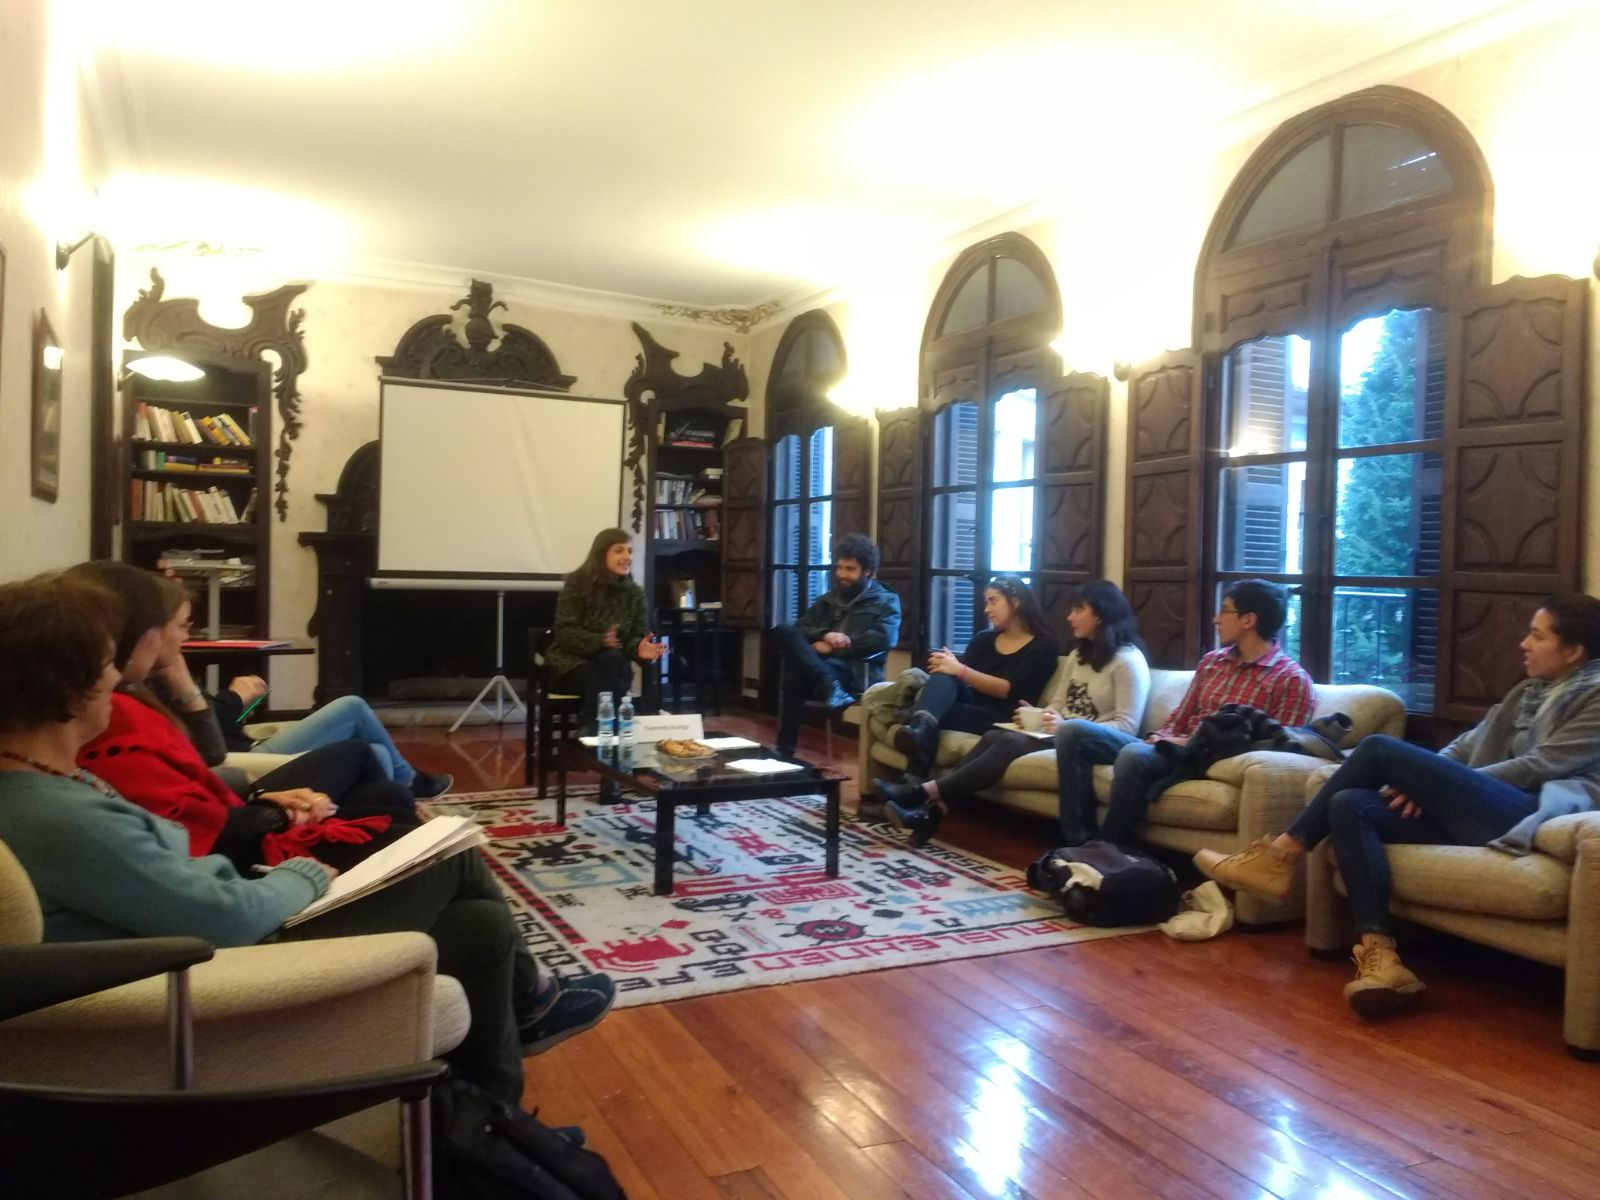 Fiammetta Bonfigli gave a presentation about social movements in Brazil.